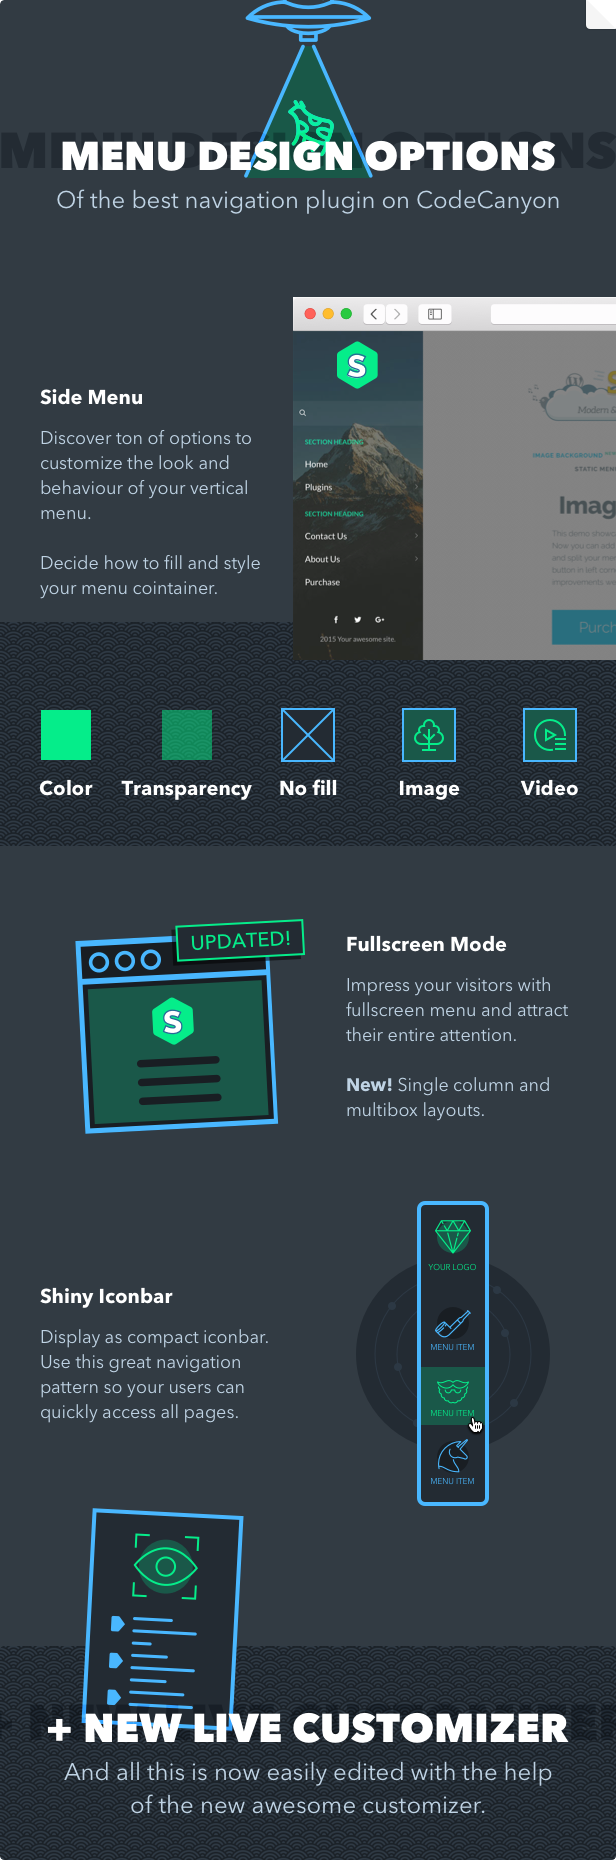 Superfly WordPress menu plugin design types